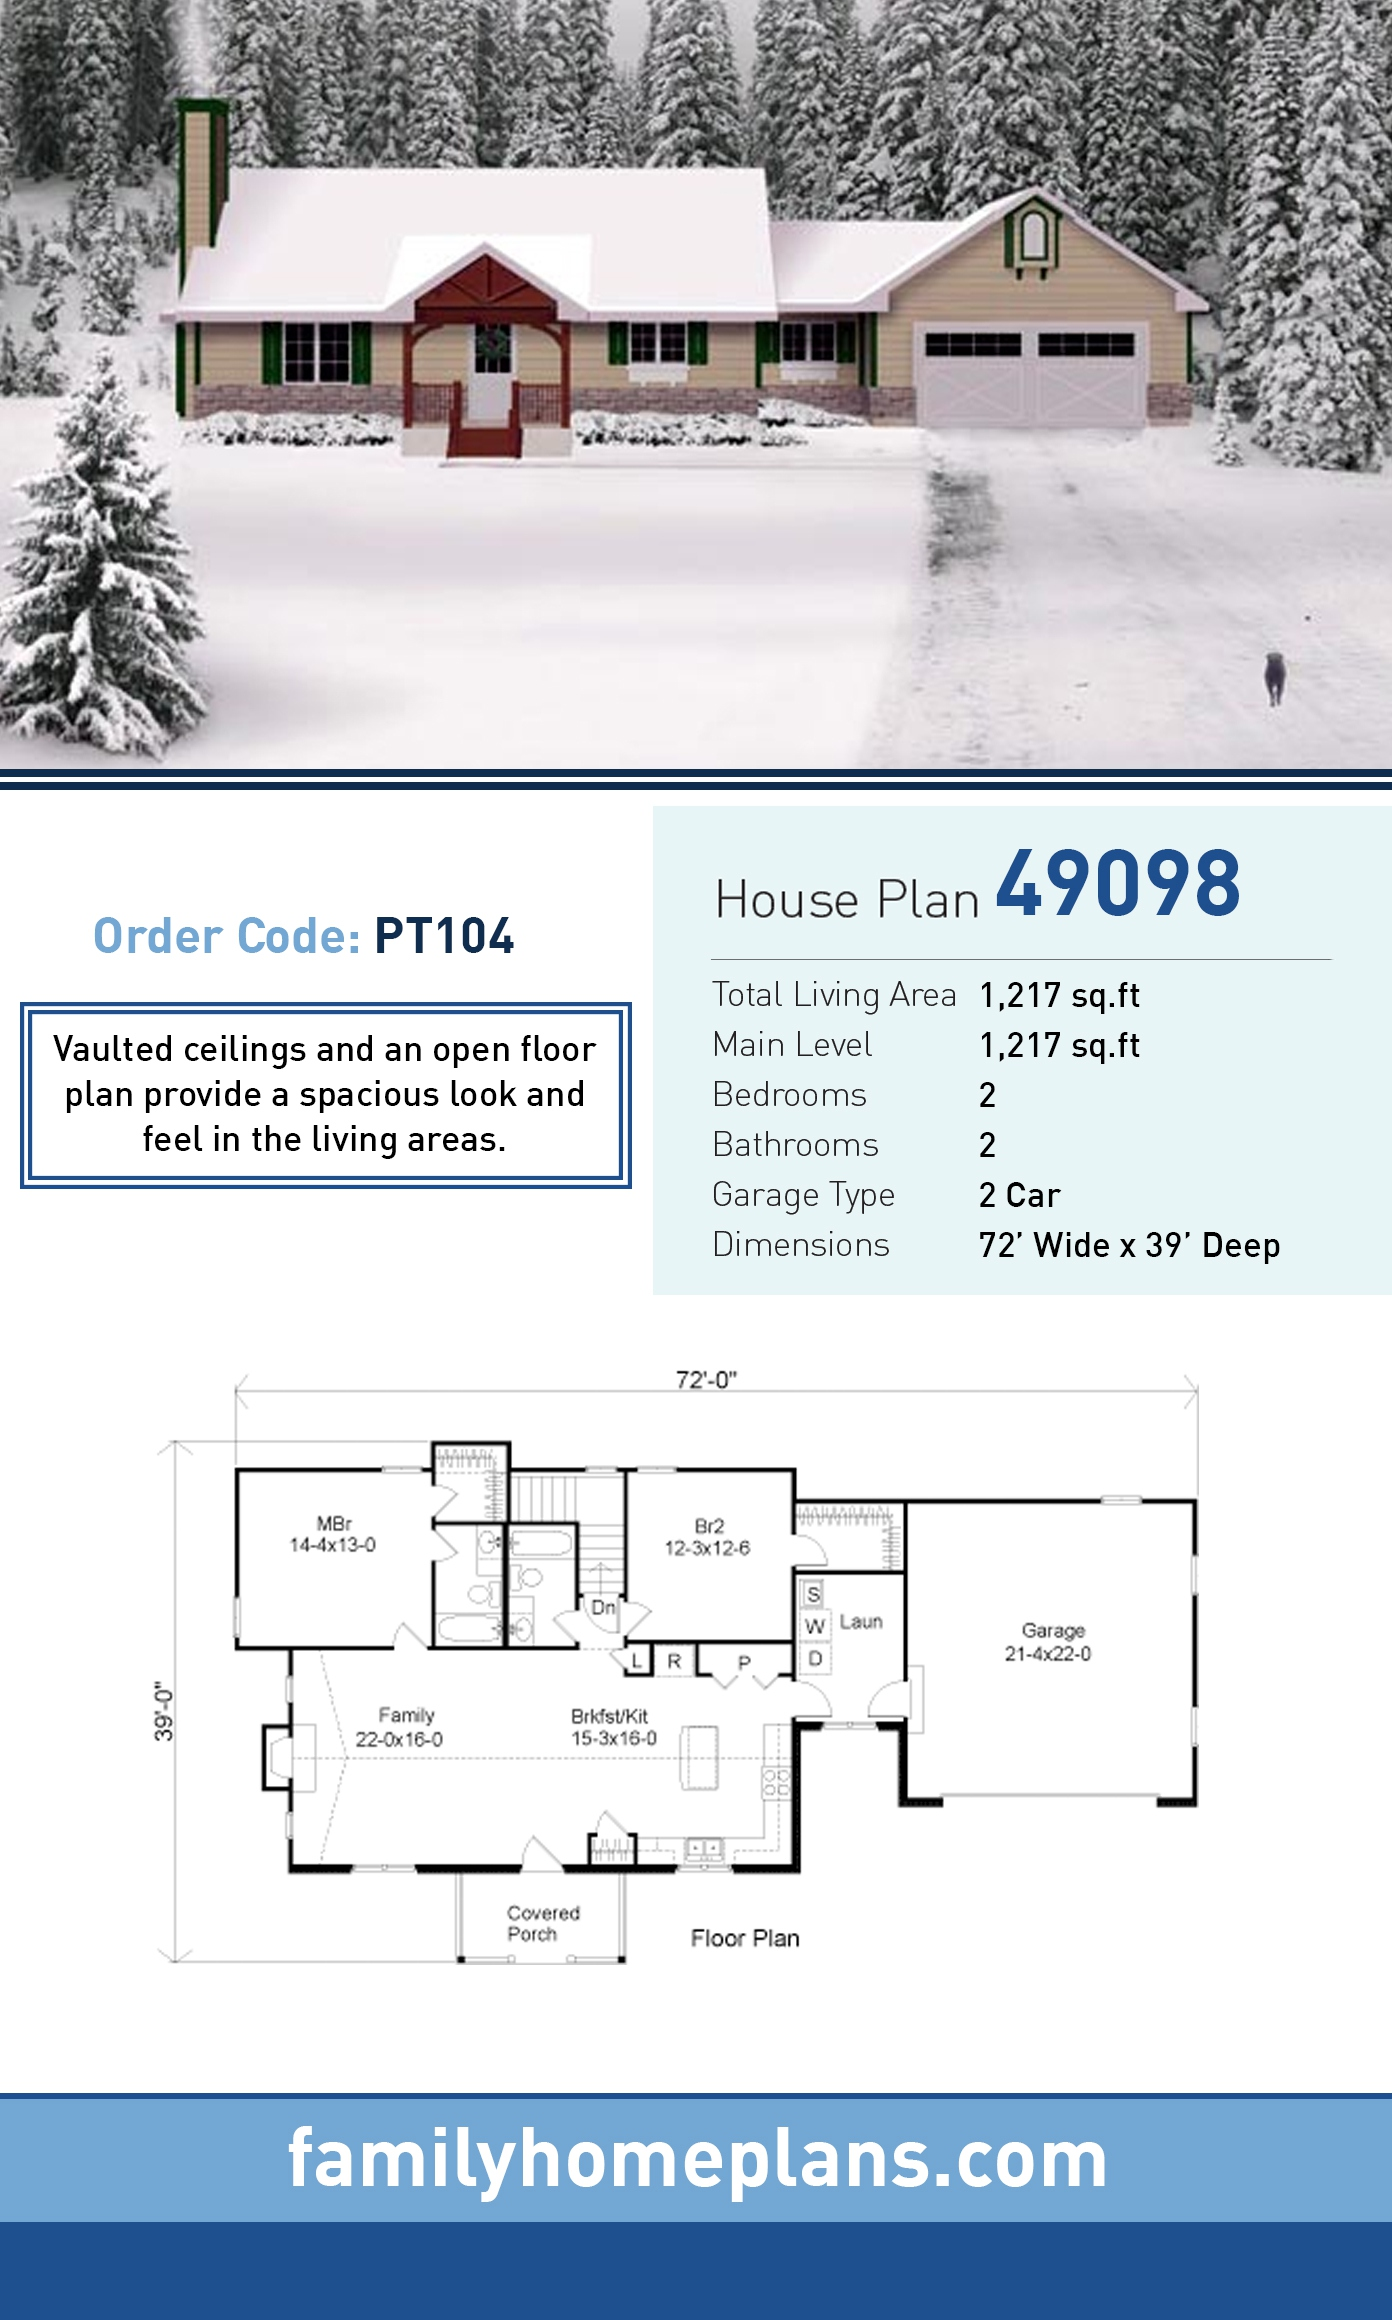 House Plan 49098 with 2 Beds, 2 Baths, 2 Car Garage